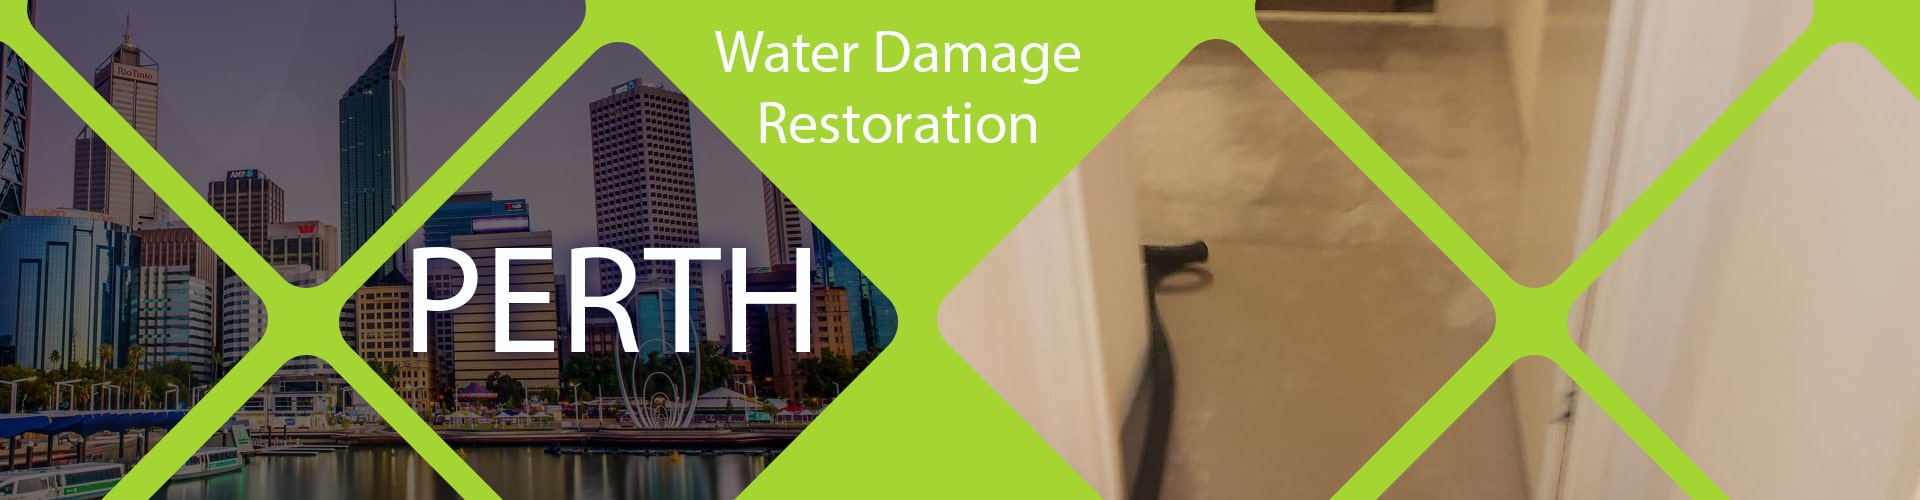 Water Damage Restoration Perth